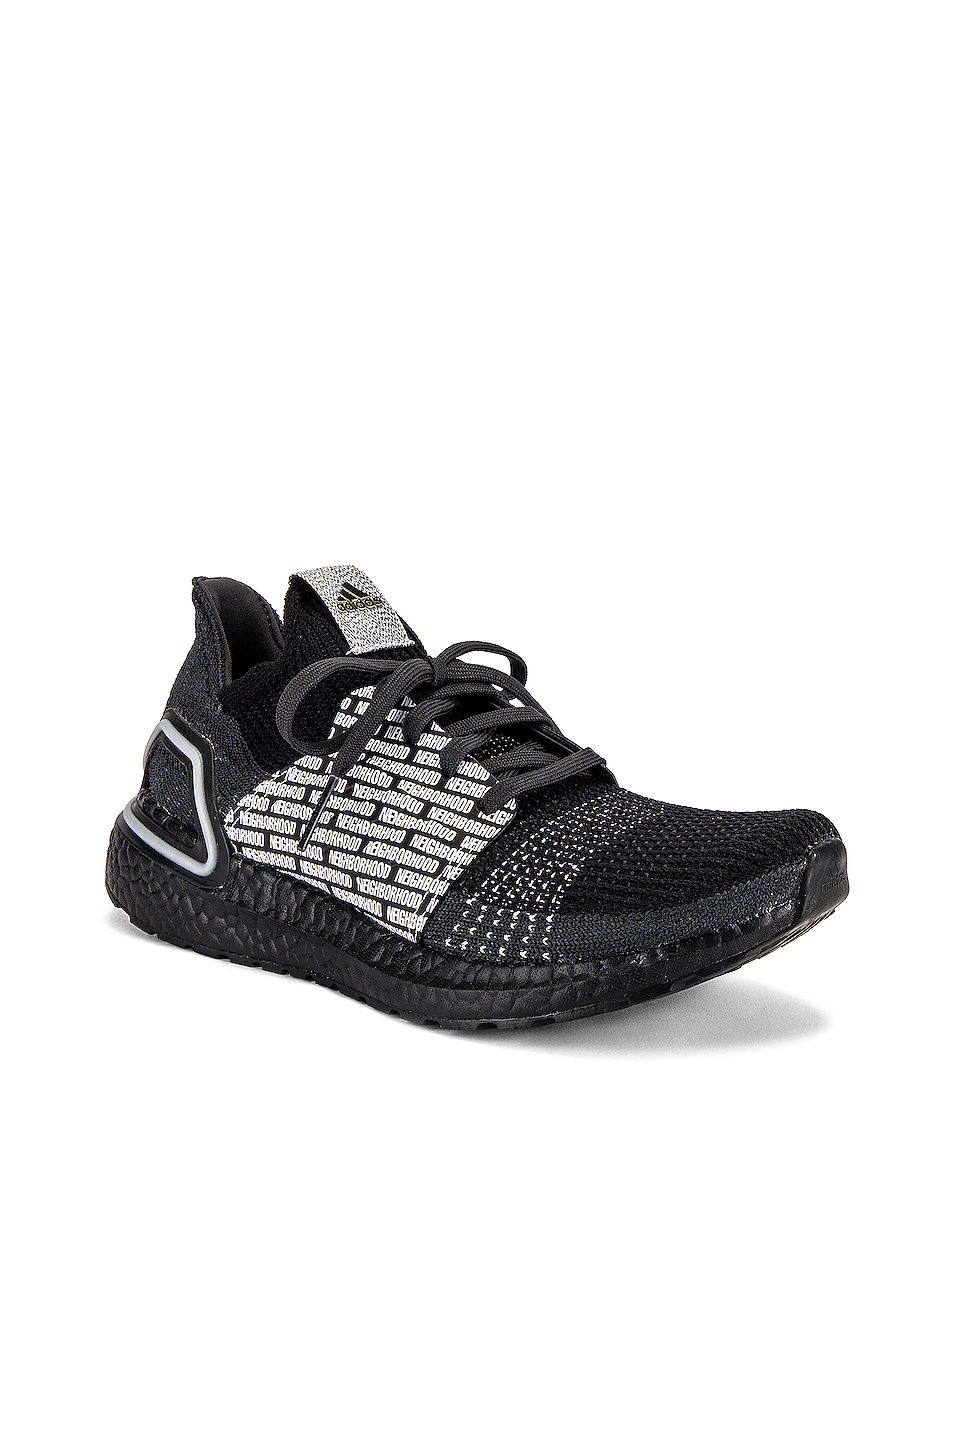 adidas Neighborhood UB19